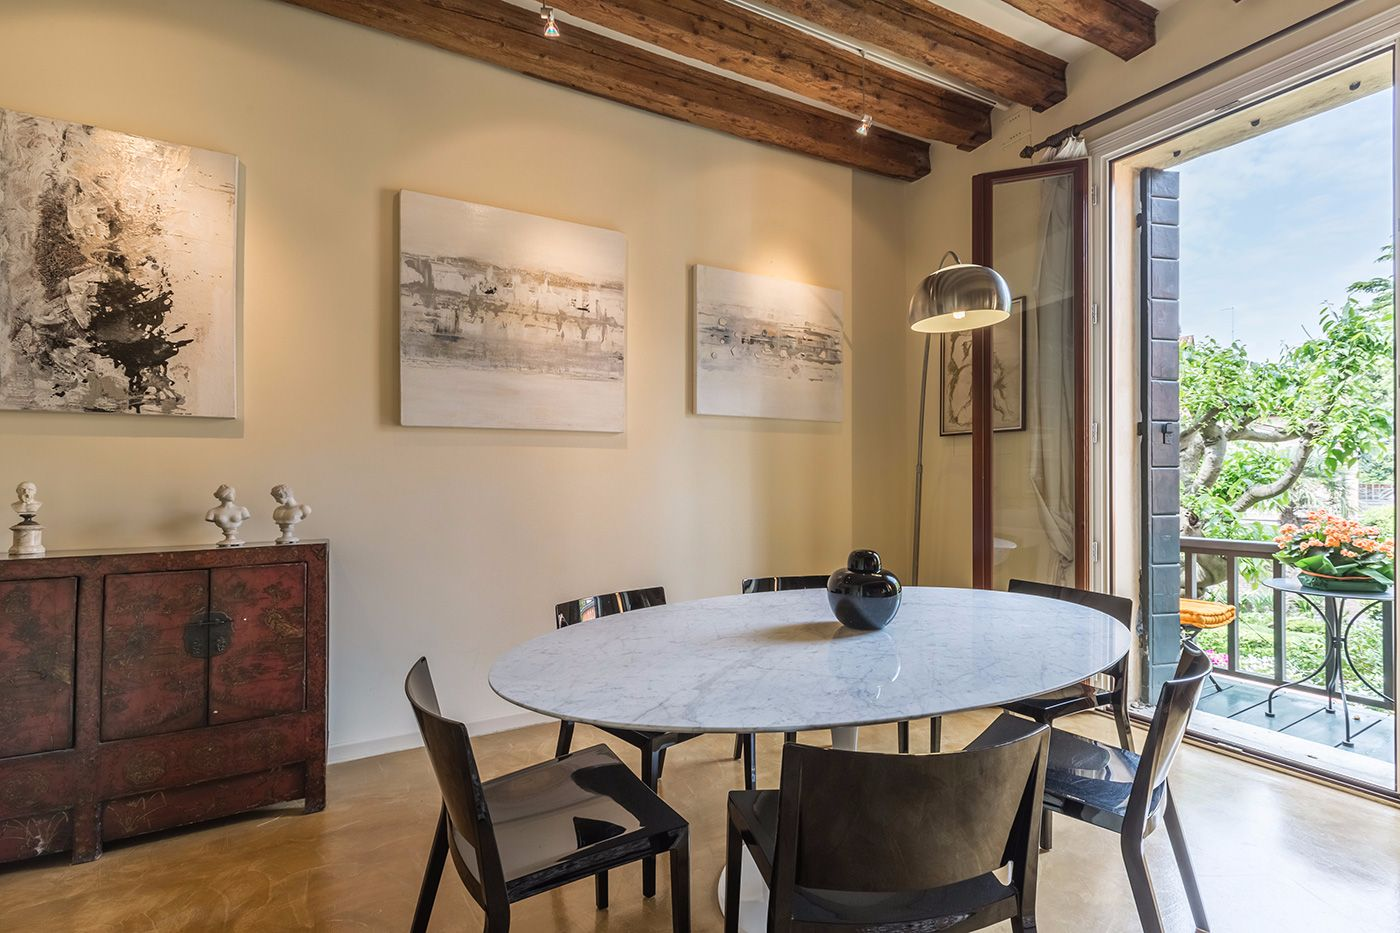 Veronese apartment dining room with access to the terrace